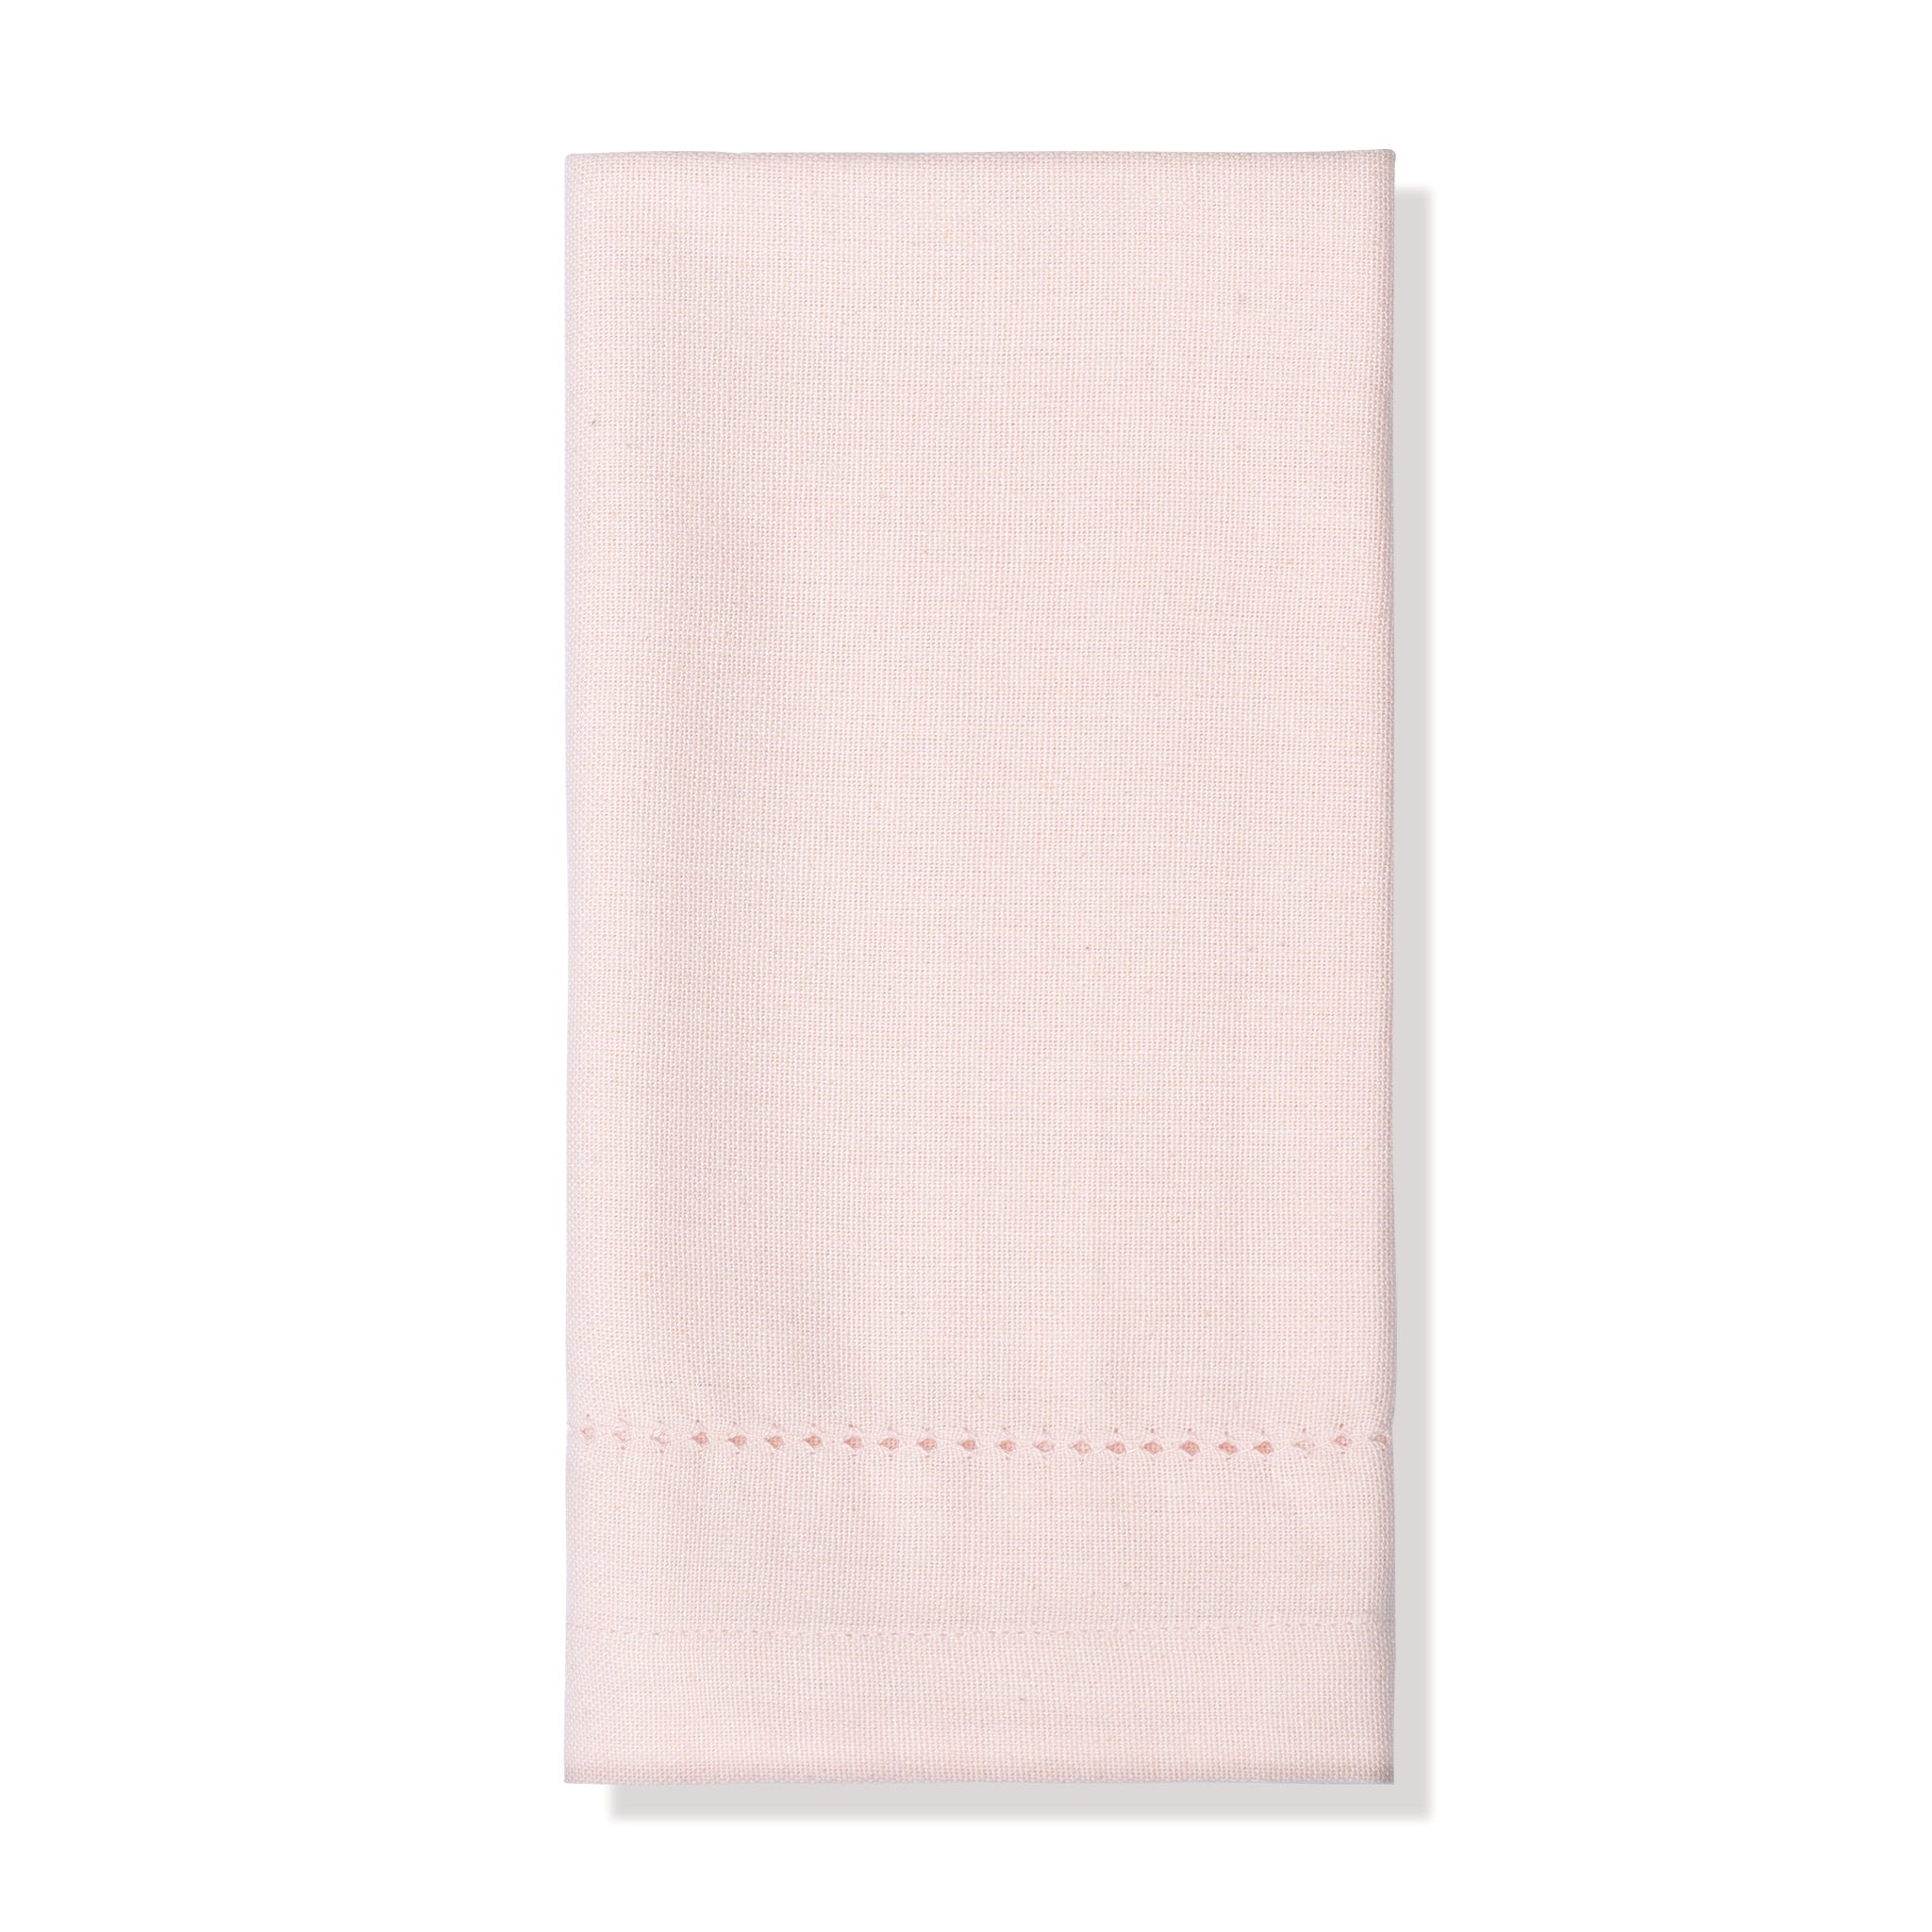 BASICS- BLUSH NAPKIN, SET OF 2